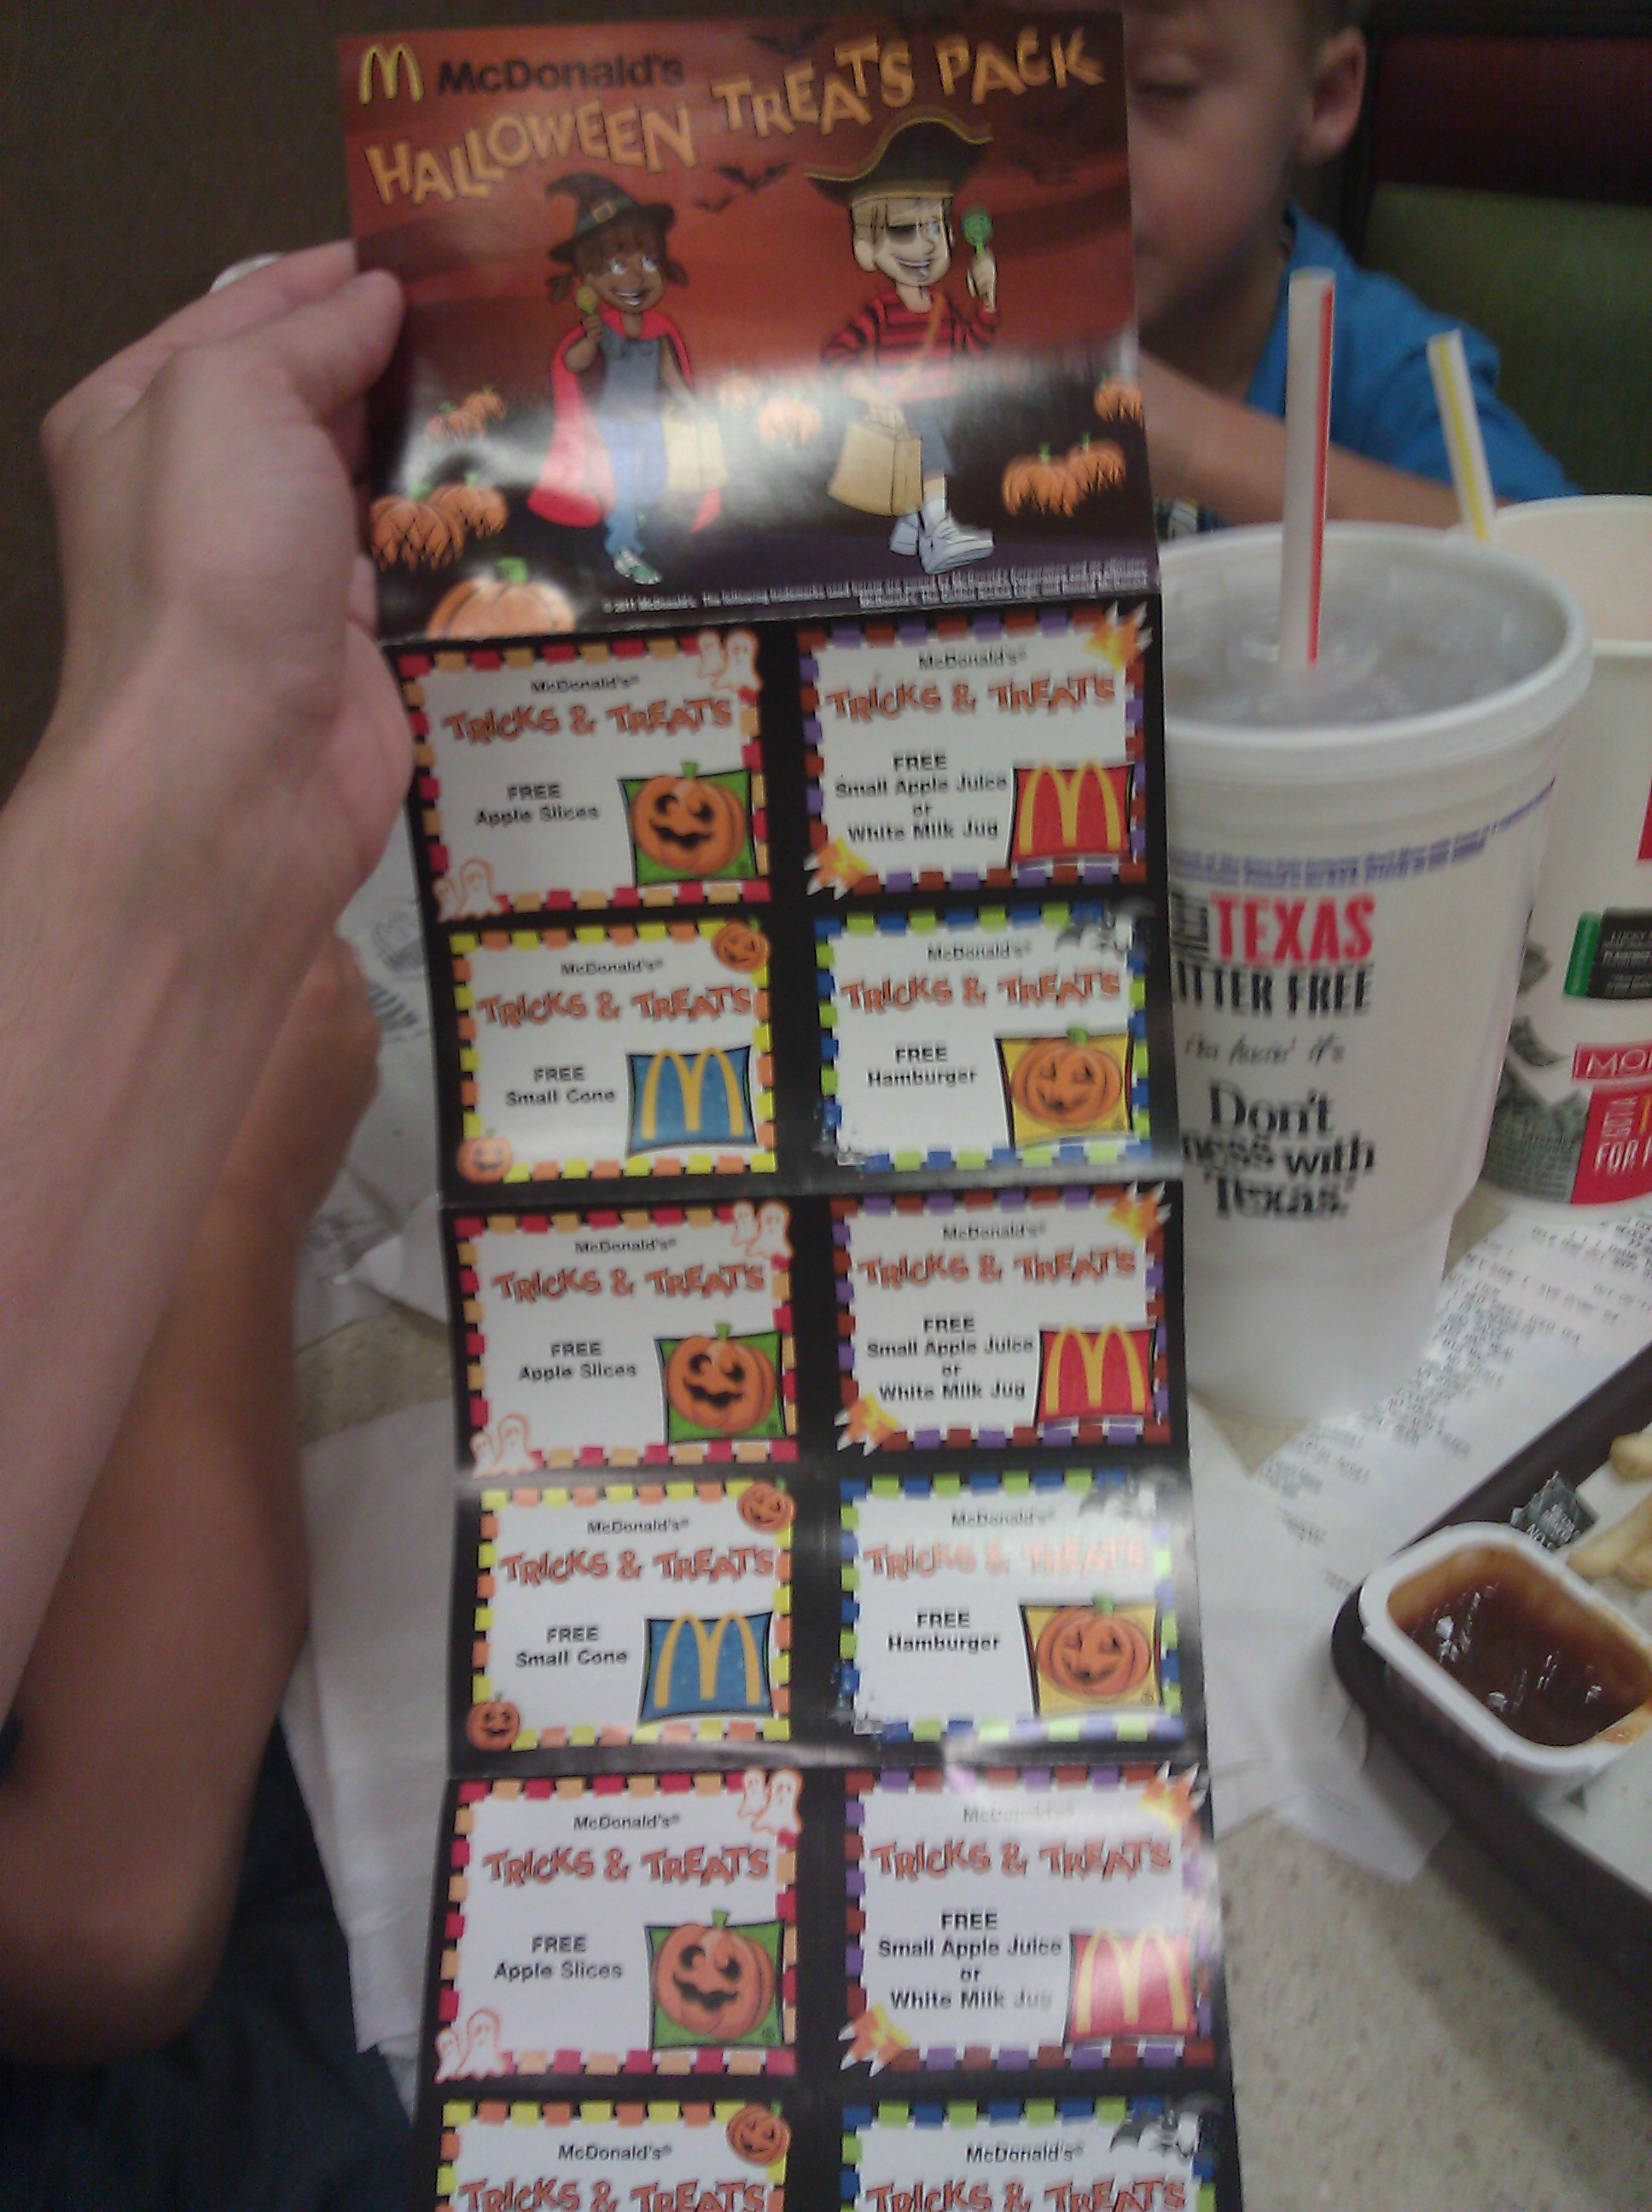 Mcdonalds Halloween Booklets Available Only 1 Mylitter One Voucher Mc Donalds Deal At A Time